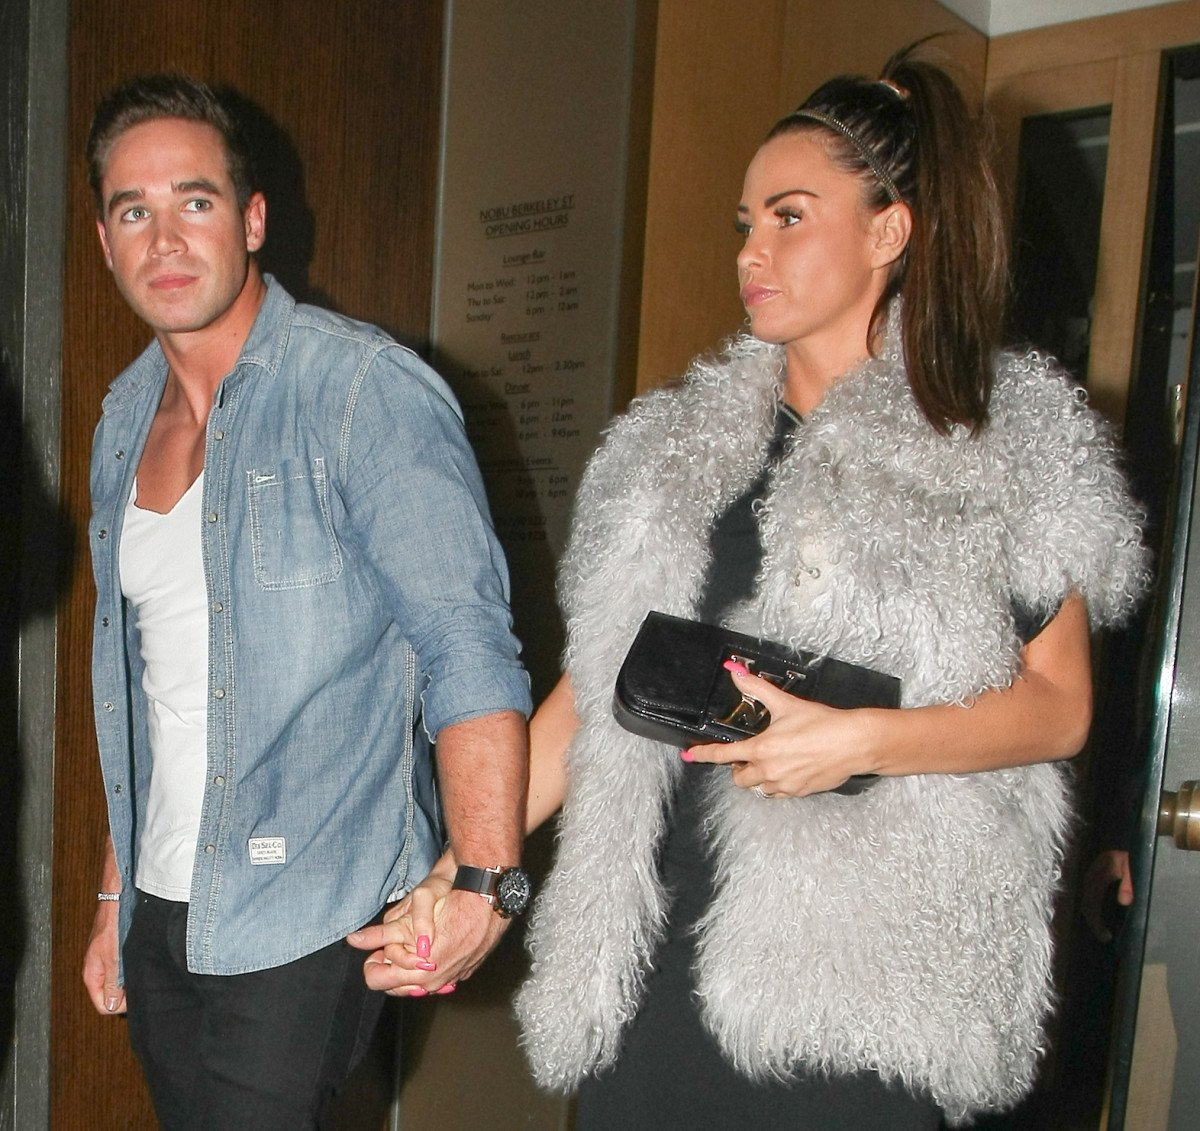 Katie Price and her new husband Kieran Hayler pictured leaving the Nobu Berkeley restaurant in Mayfair after enjoying a romantic Valentine's dinner together, London, UK